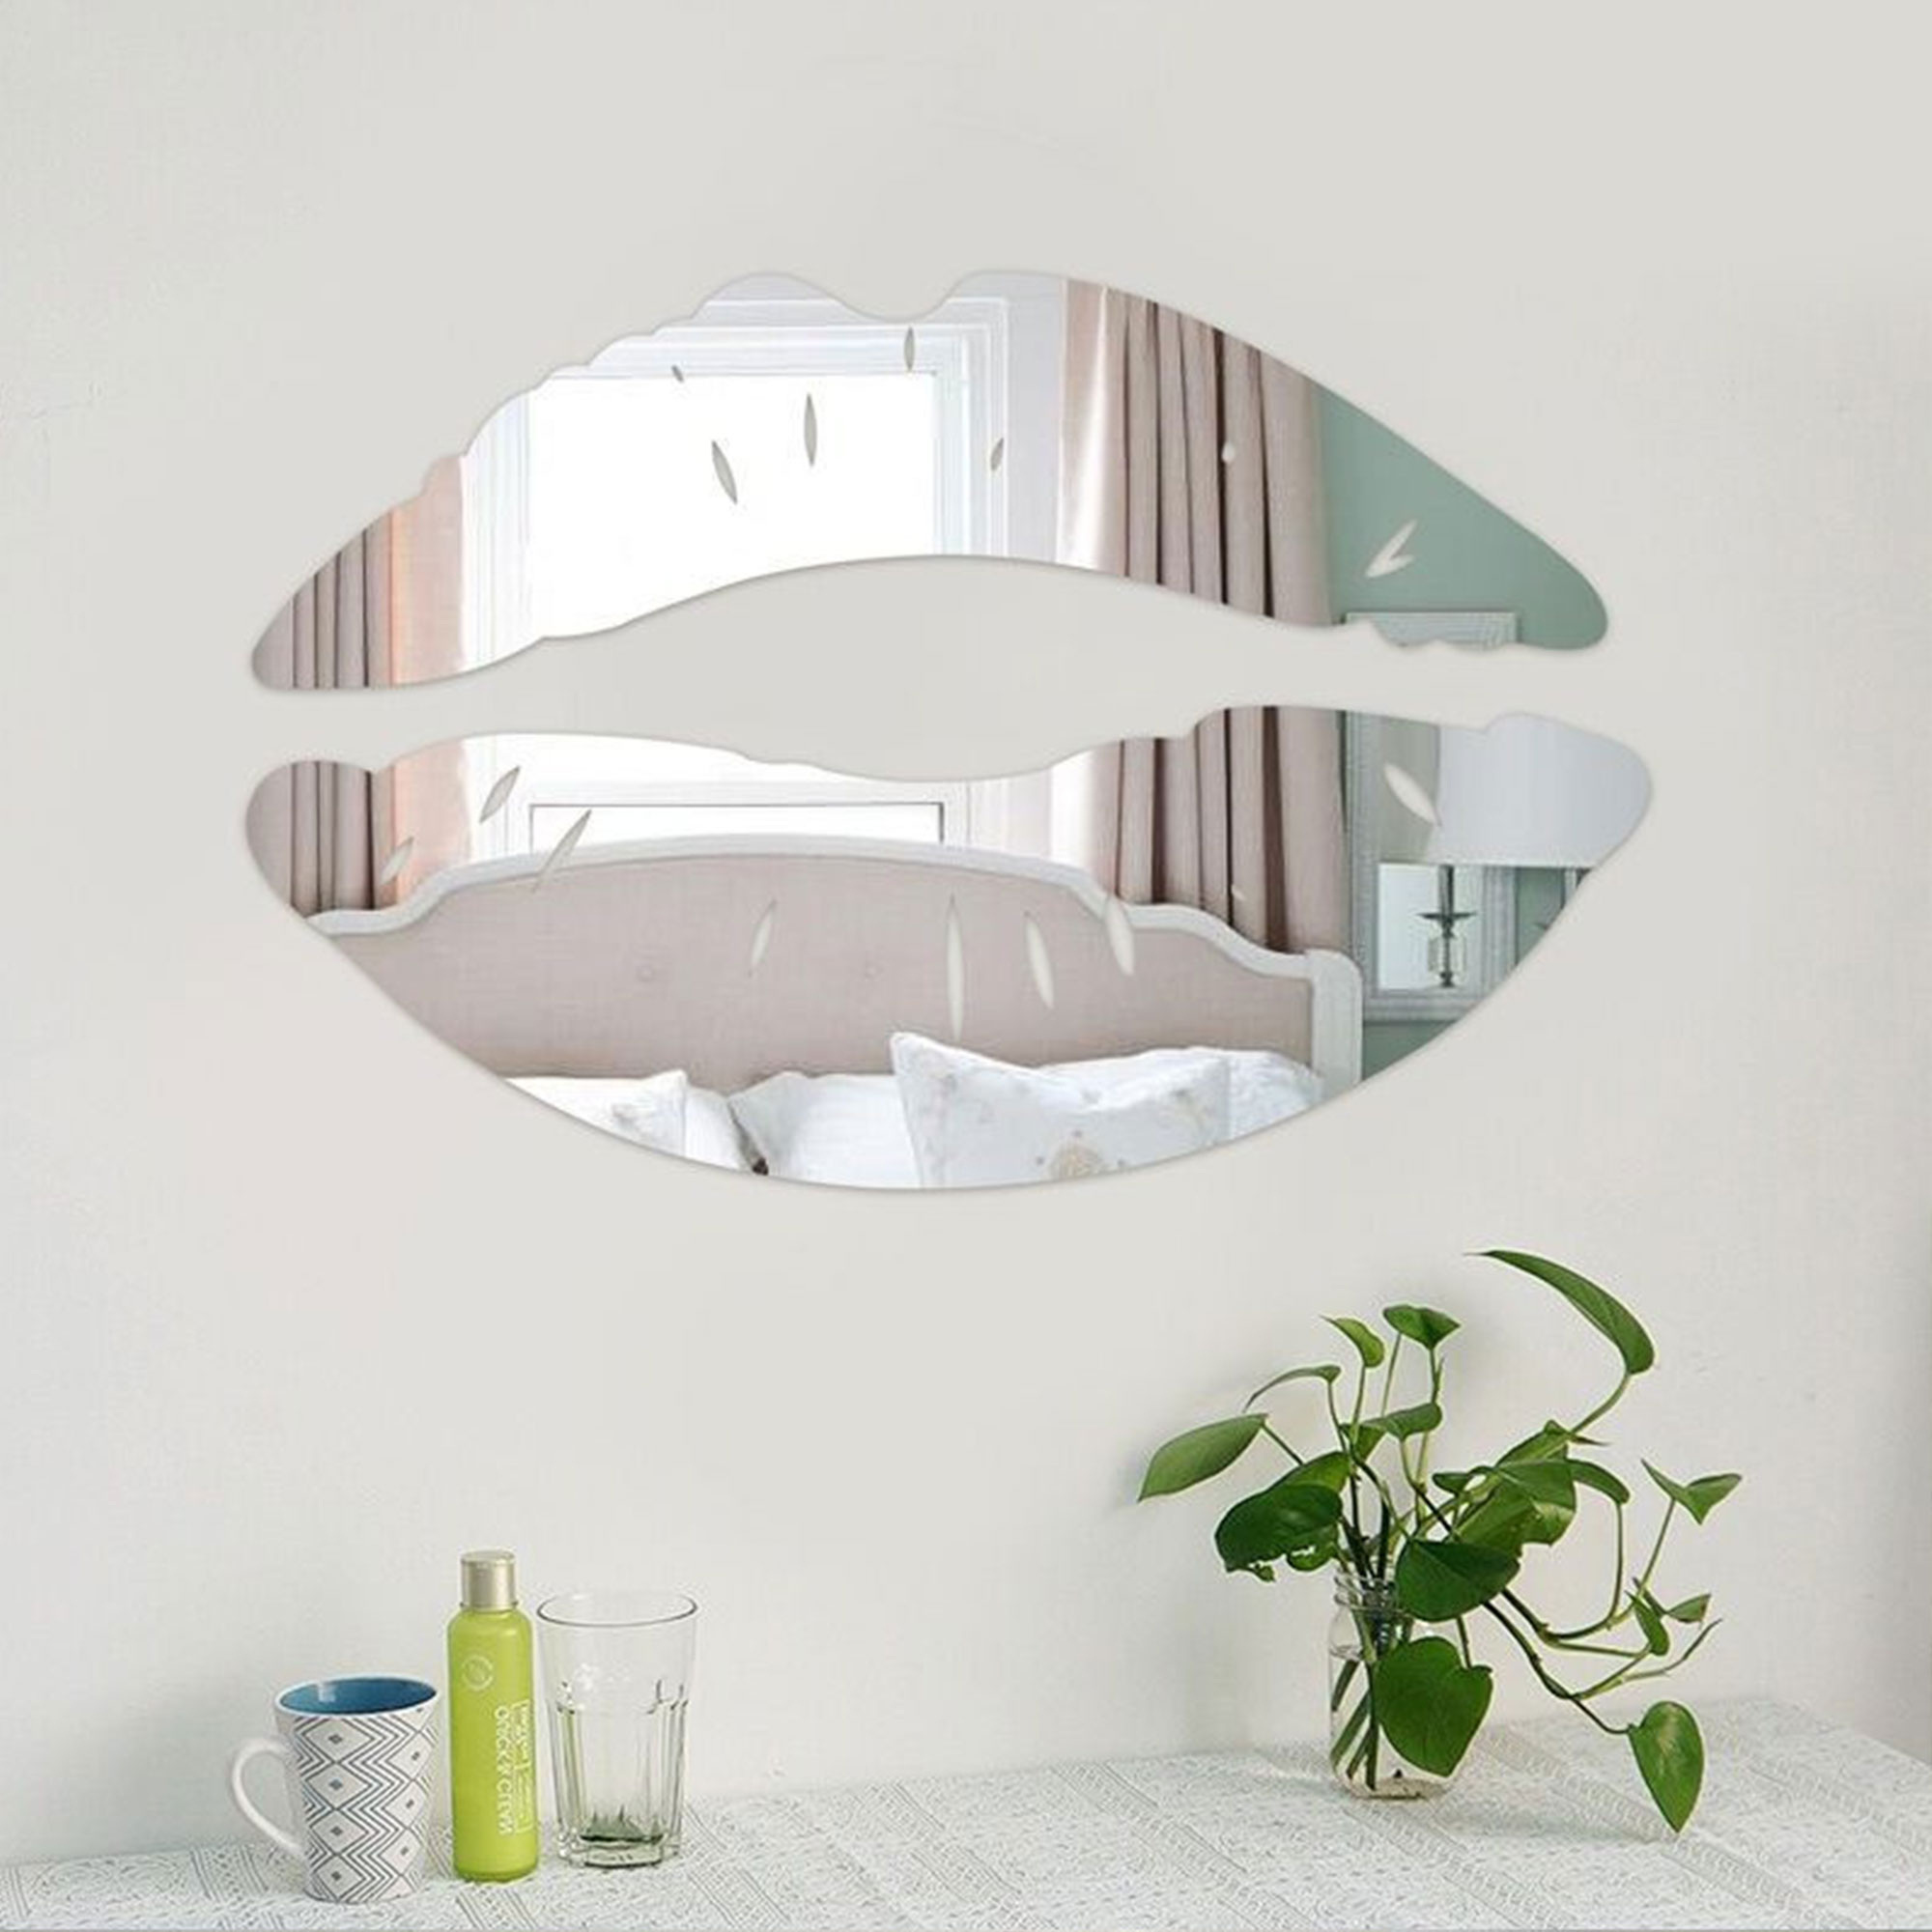 Trendy Acrylic Wall Mirrors Regarding Details About Acrylic Wall Mirror Stickers 3D Lip Art Mural Decal Home Rome Decor Removable Uk (Gallery 20 of 20)